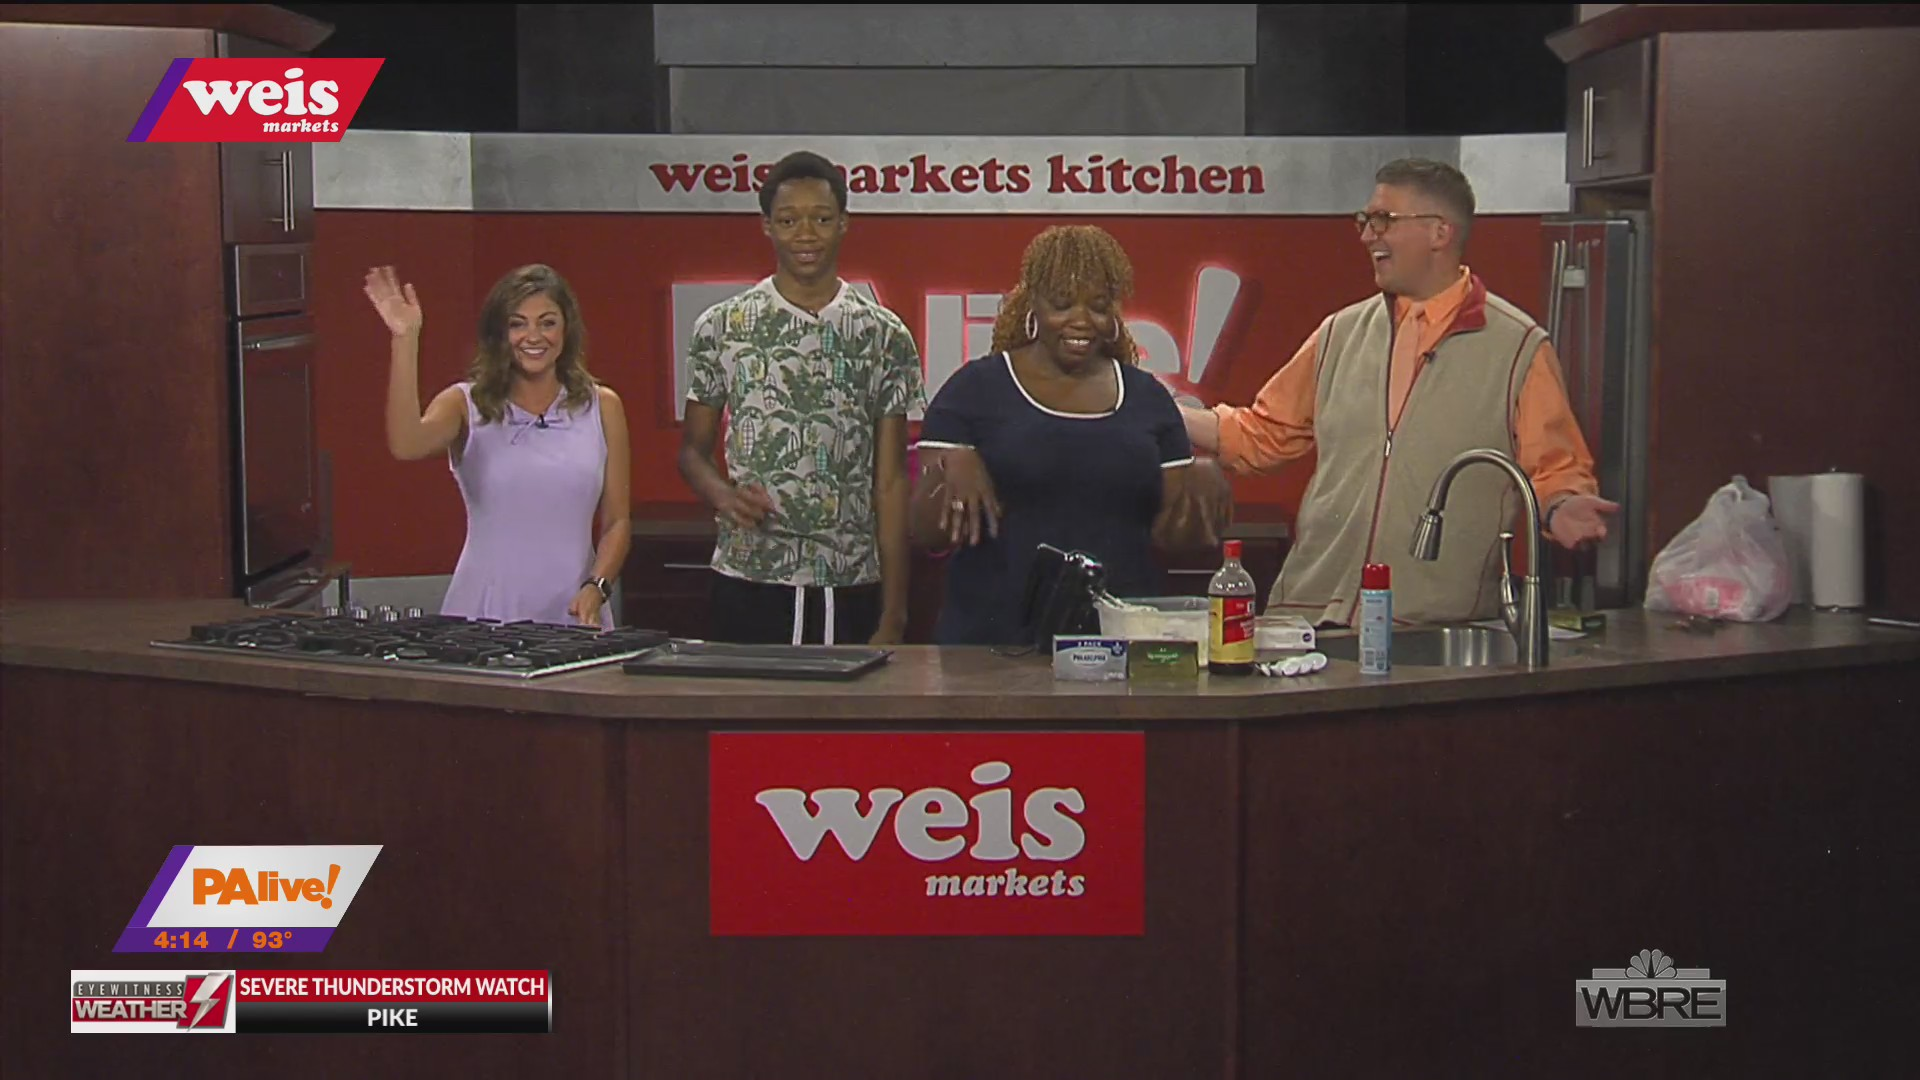 PA live! In The Kitchen June 30, 2021